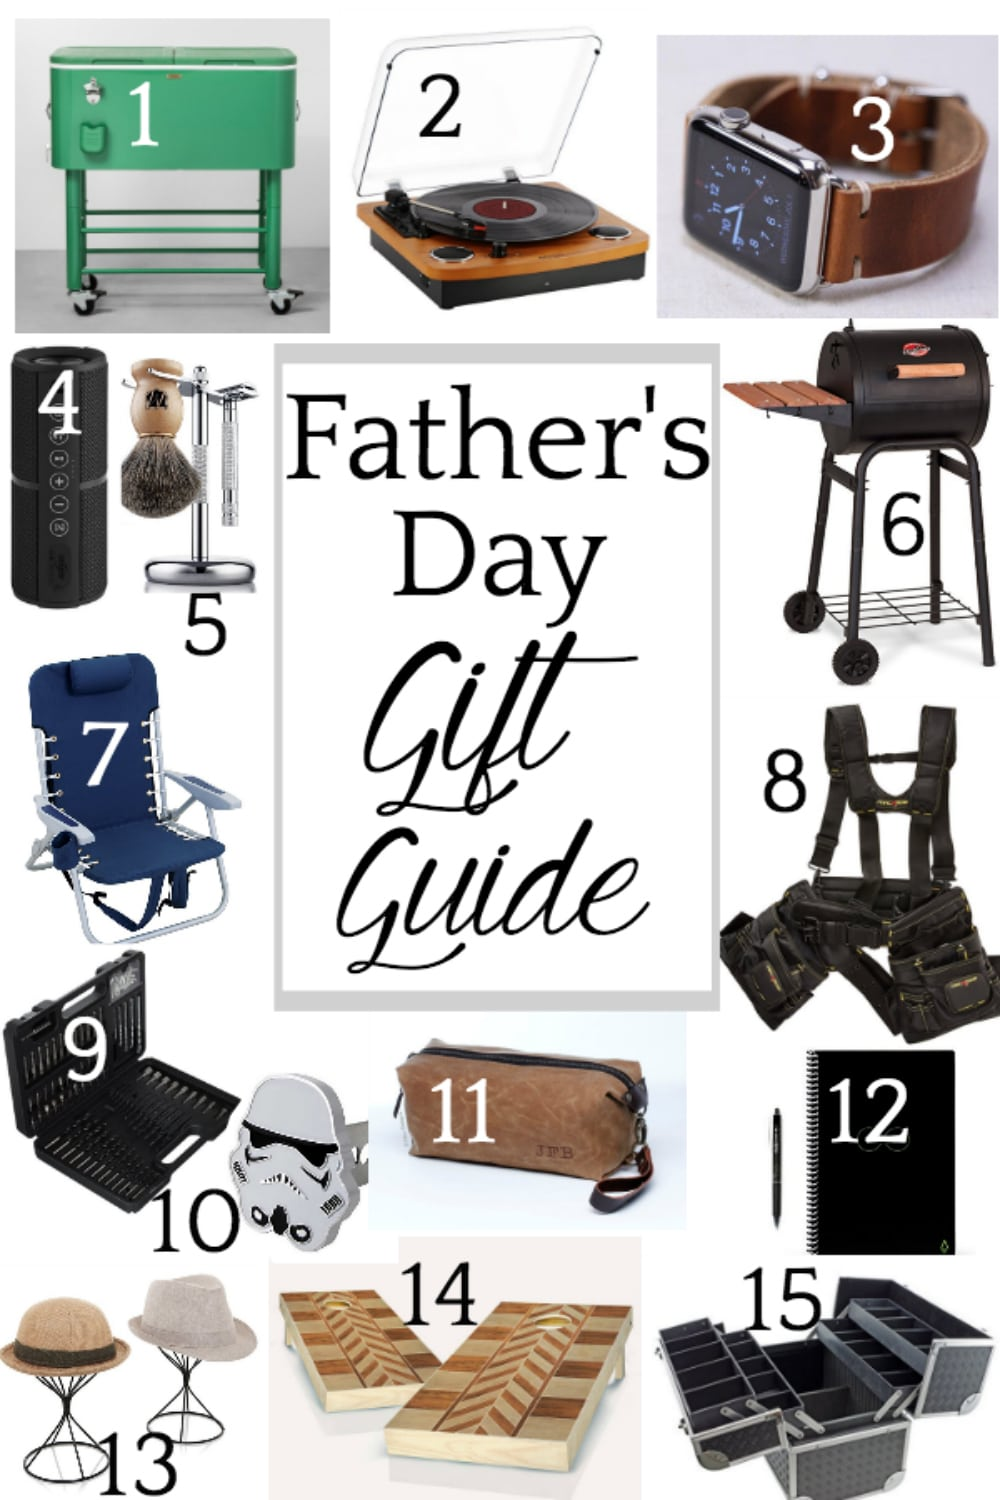 Father's Day Gift Guide : 15 fun and unique gift ideas to give for Father's Day 2018. #fathersdaygiftideas #fathersdaygiftguide #fathersday #fathersdaygifts #fathersdaypresents #fathersdayideas